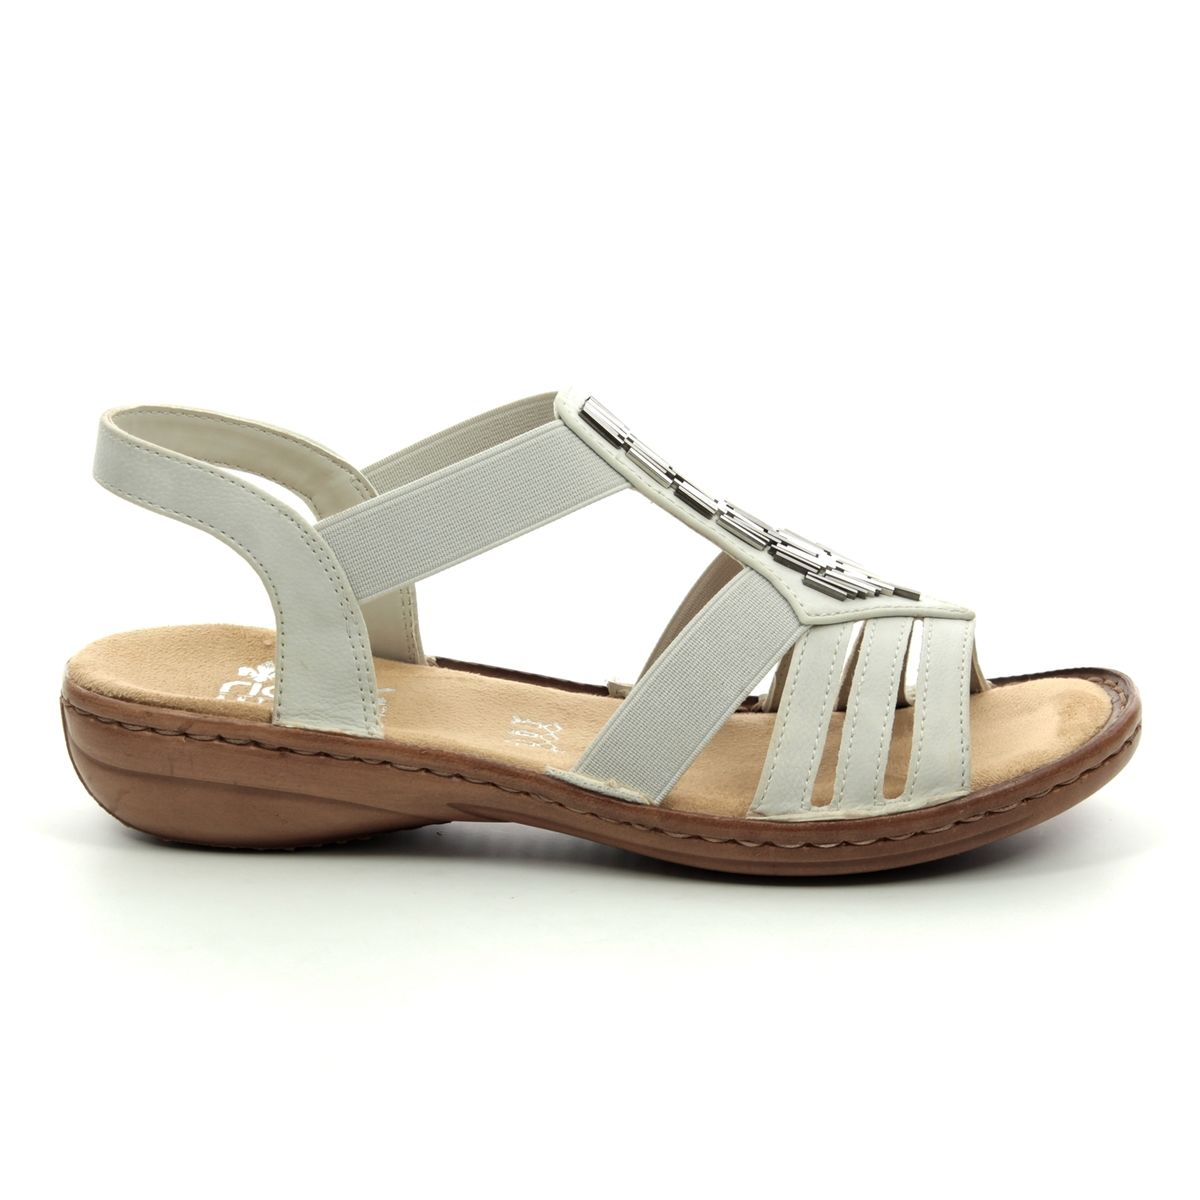 c37d4d2d8815 Rieker Sandals - Off white - 60800-80 REGICHIME